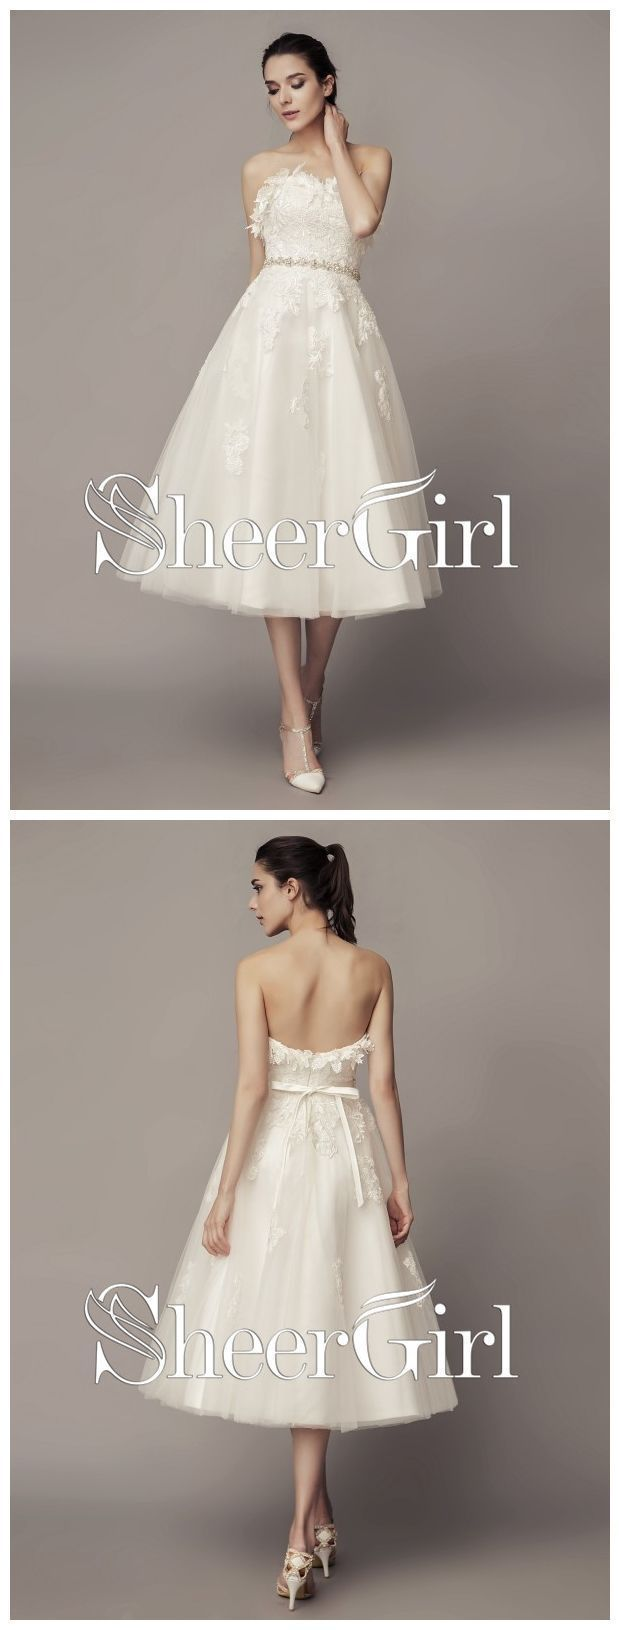 Short wedding dresses plus size wedding dressescheap wedding